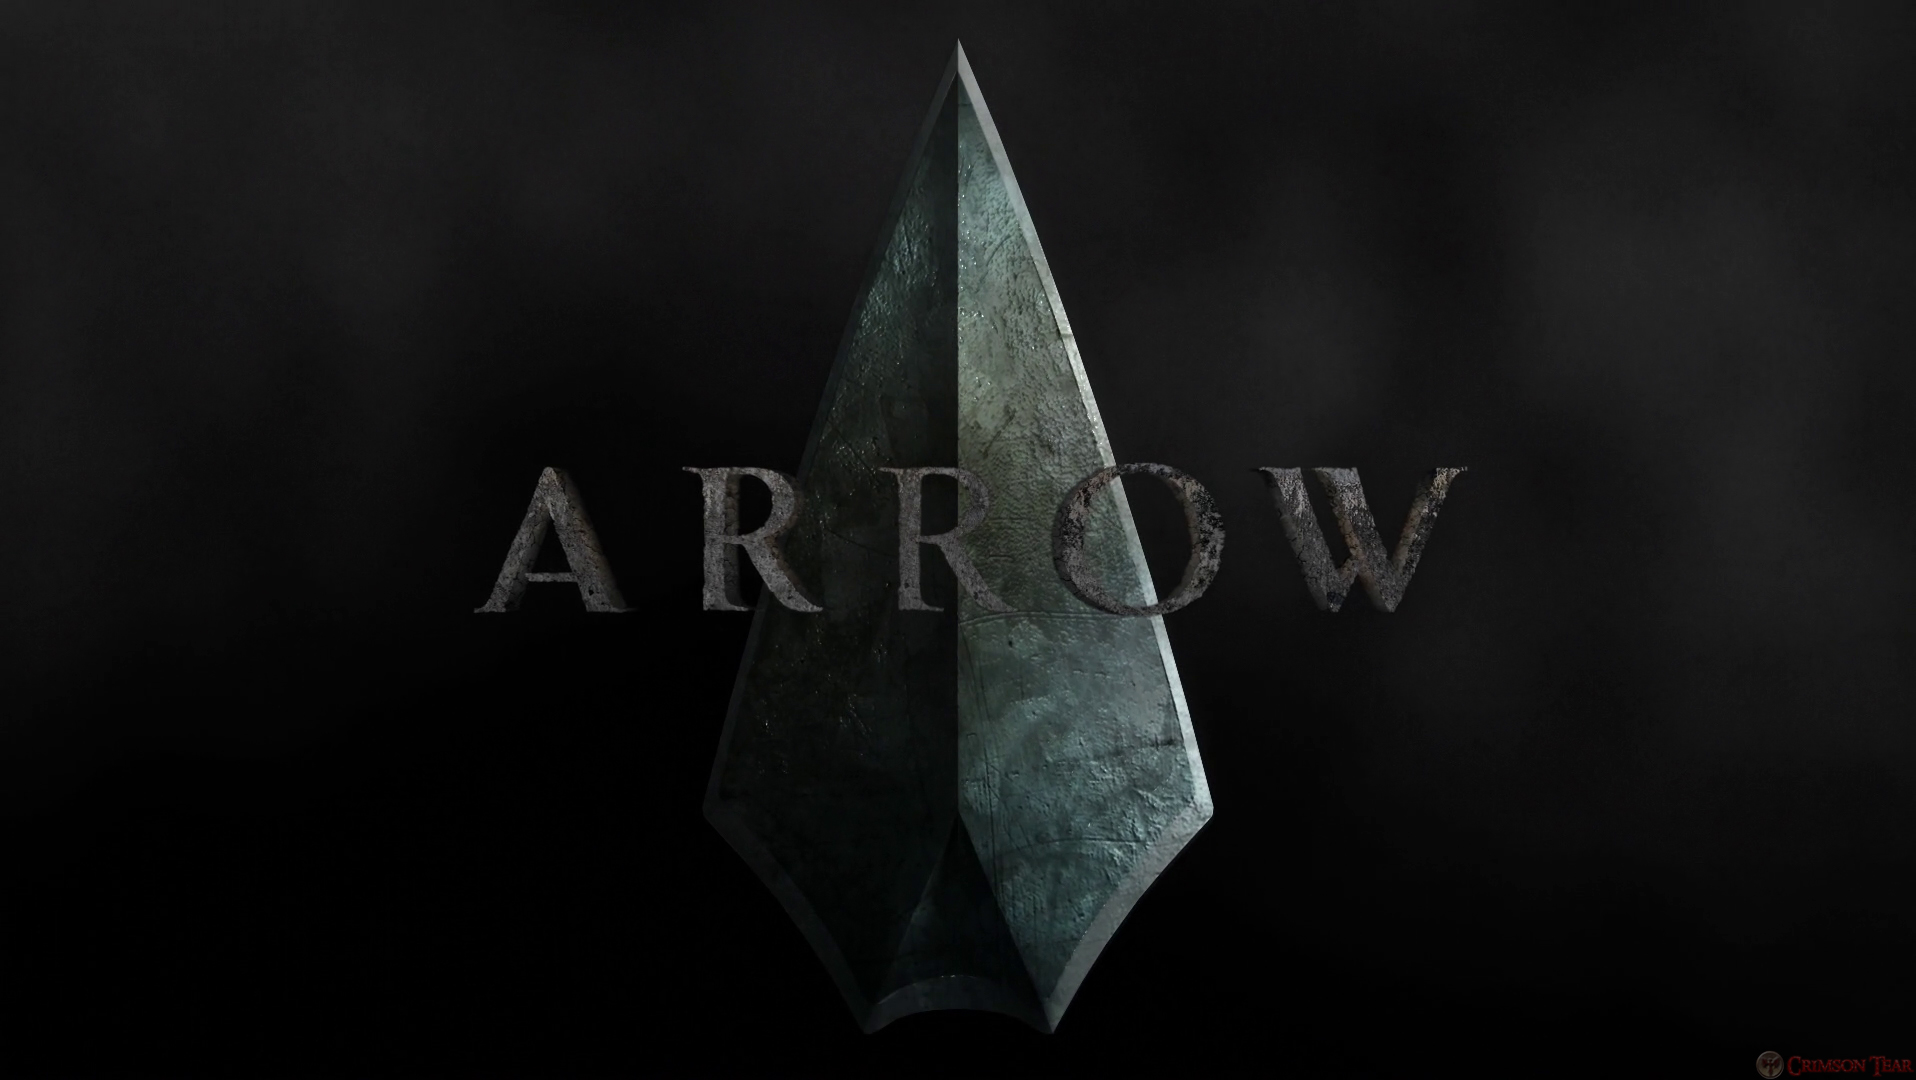 The arrow Logos.